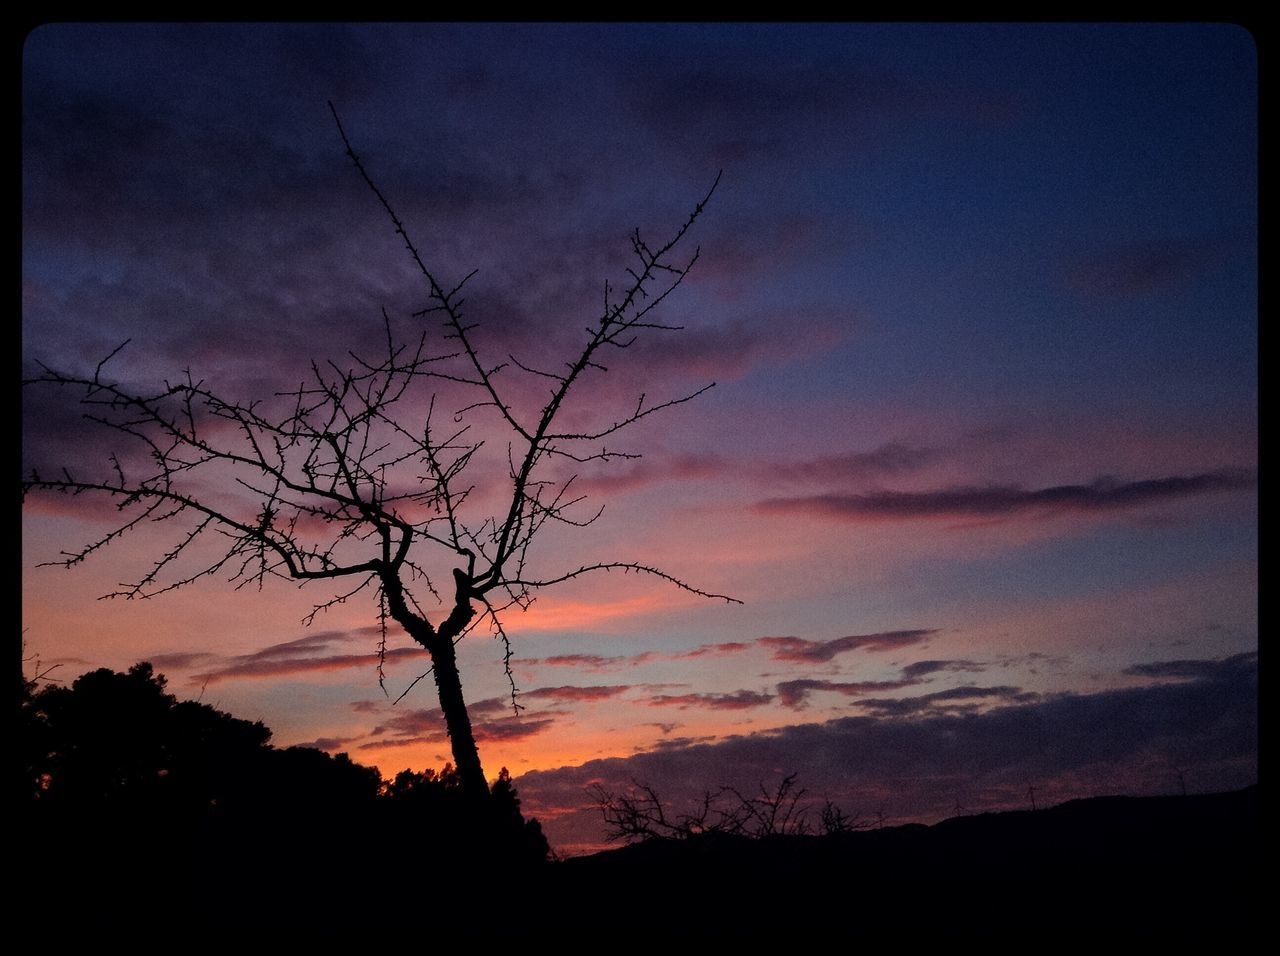 sunset, silhouette, sky, beauty in nature, tranquility, majestic, tranquil scene, nature, scenics, tree, cloud - sky, no people, outdoors, bare tree, landscape, low angle view, branch, day